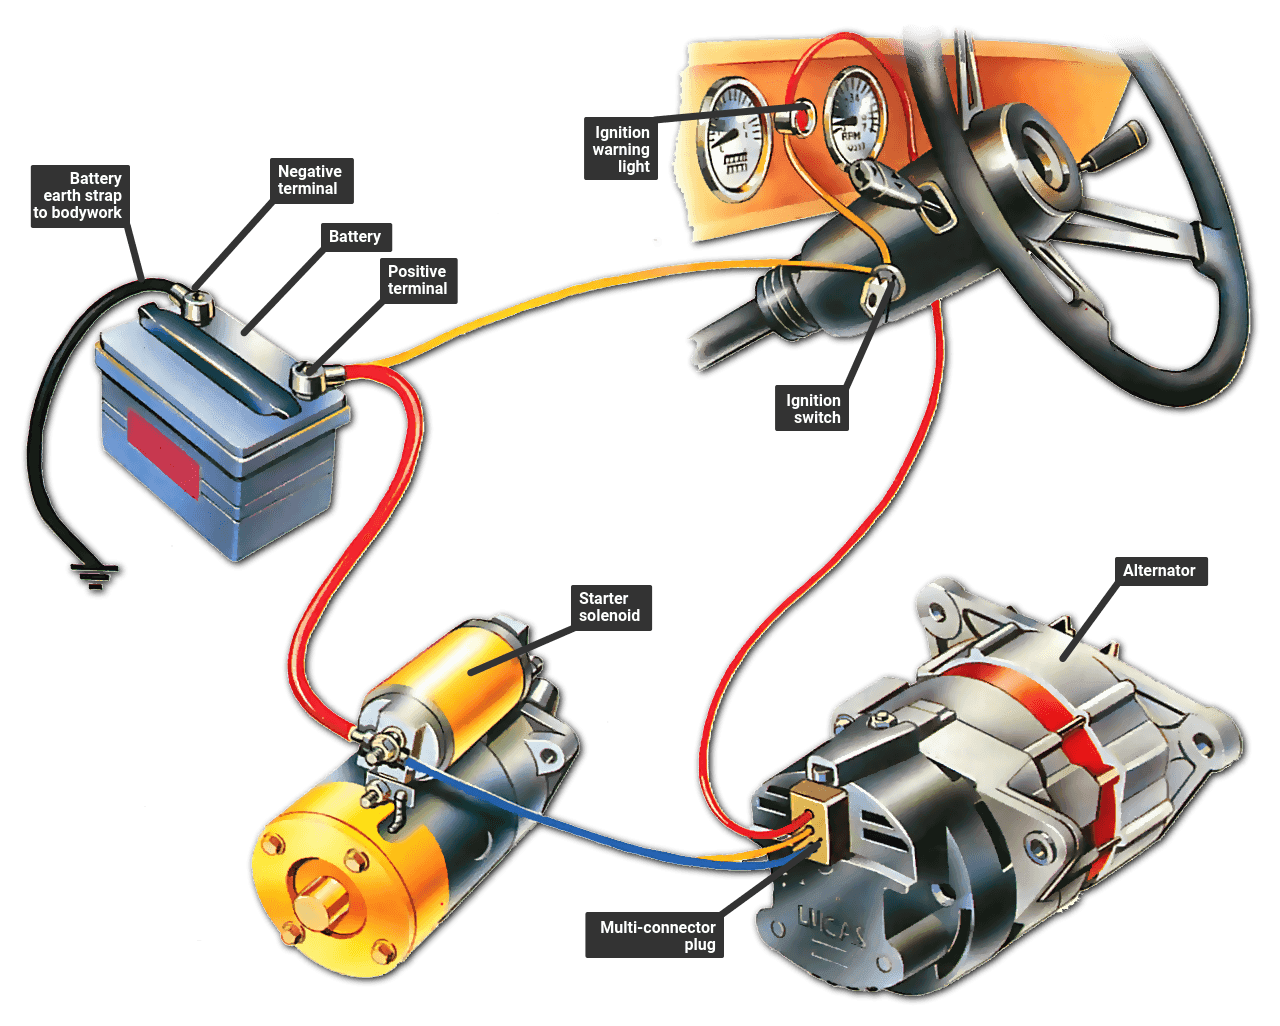 Troubleshooting The Ignition Warning Light How A Car Works Boat Dual Battery Wiring Diagram Alternator